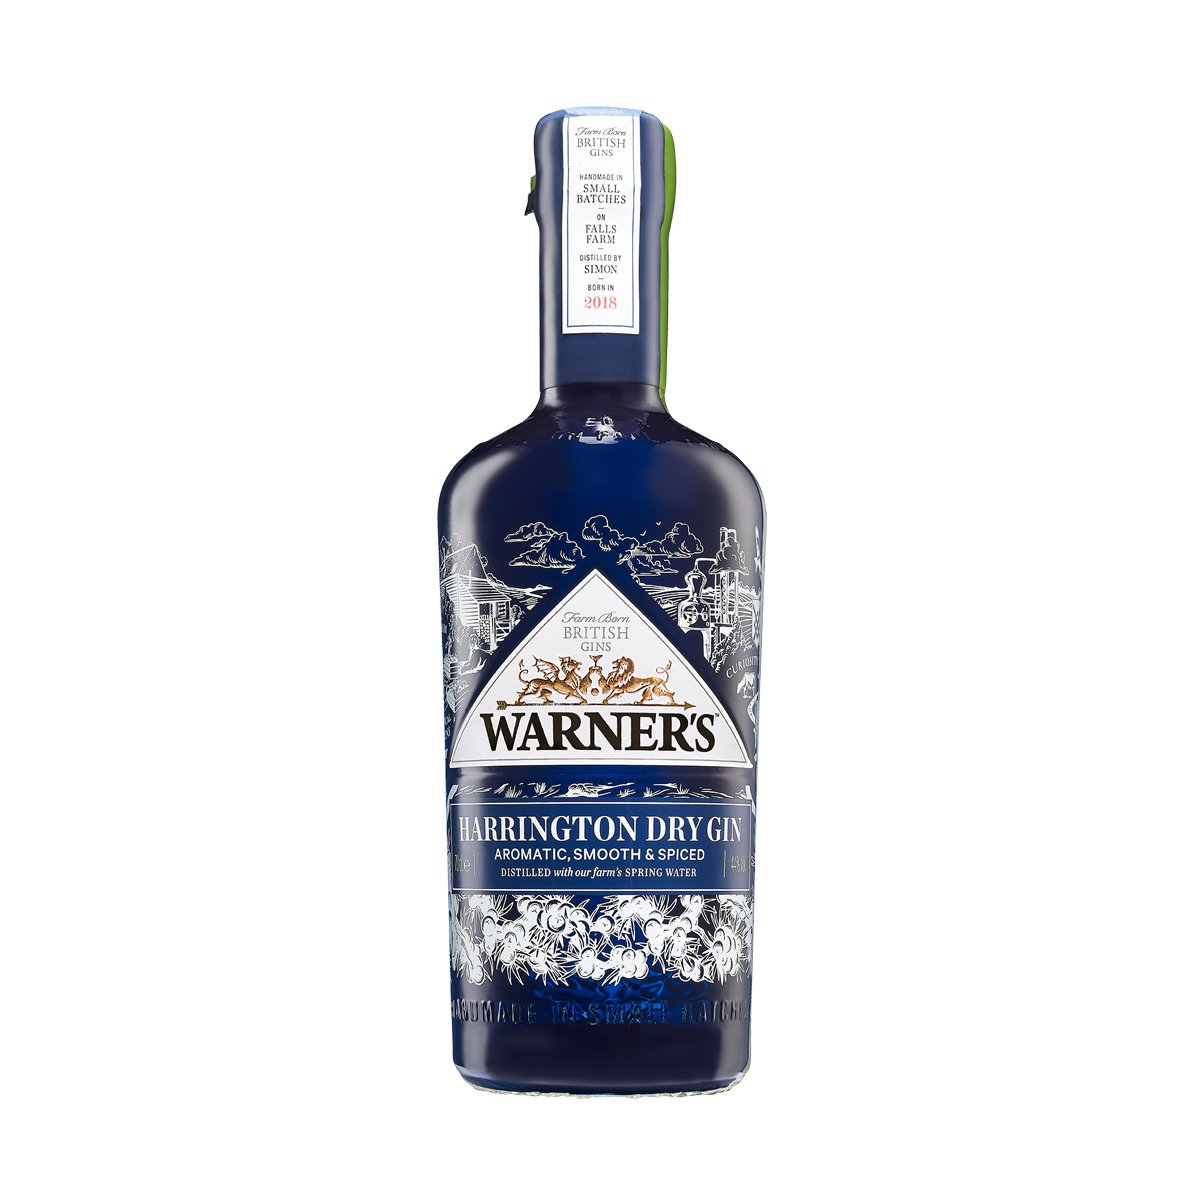 Warner's Harrington Dry Gin